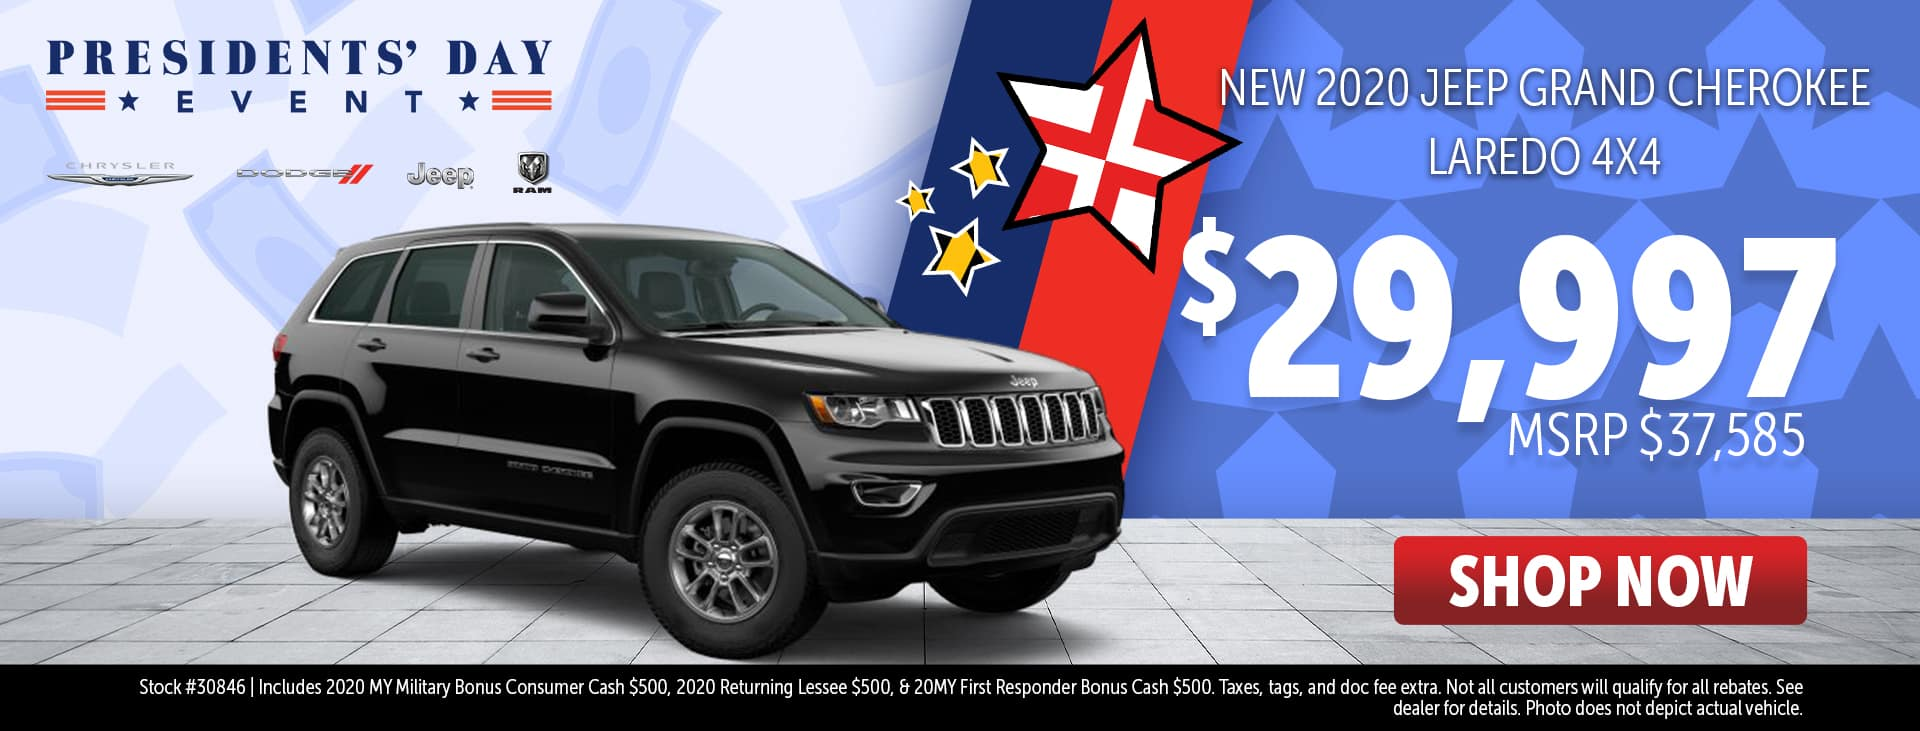 Presidents' Day Event Price for 2020 Jeep Grand Cherokee